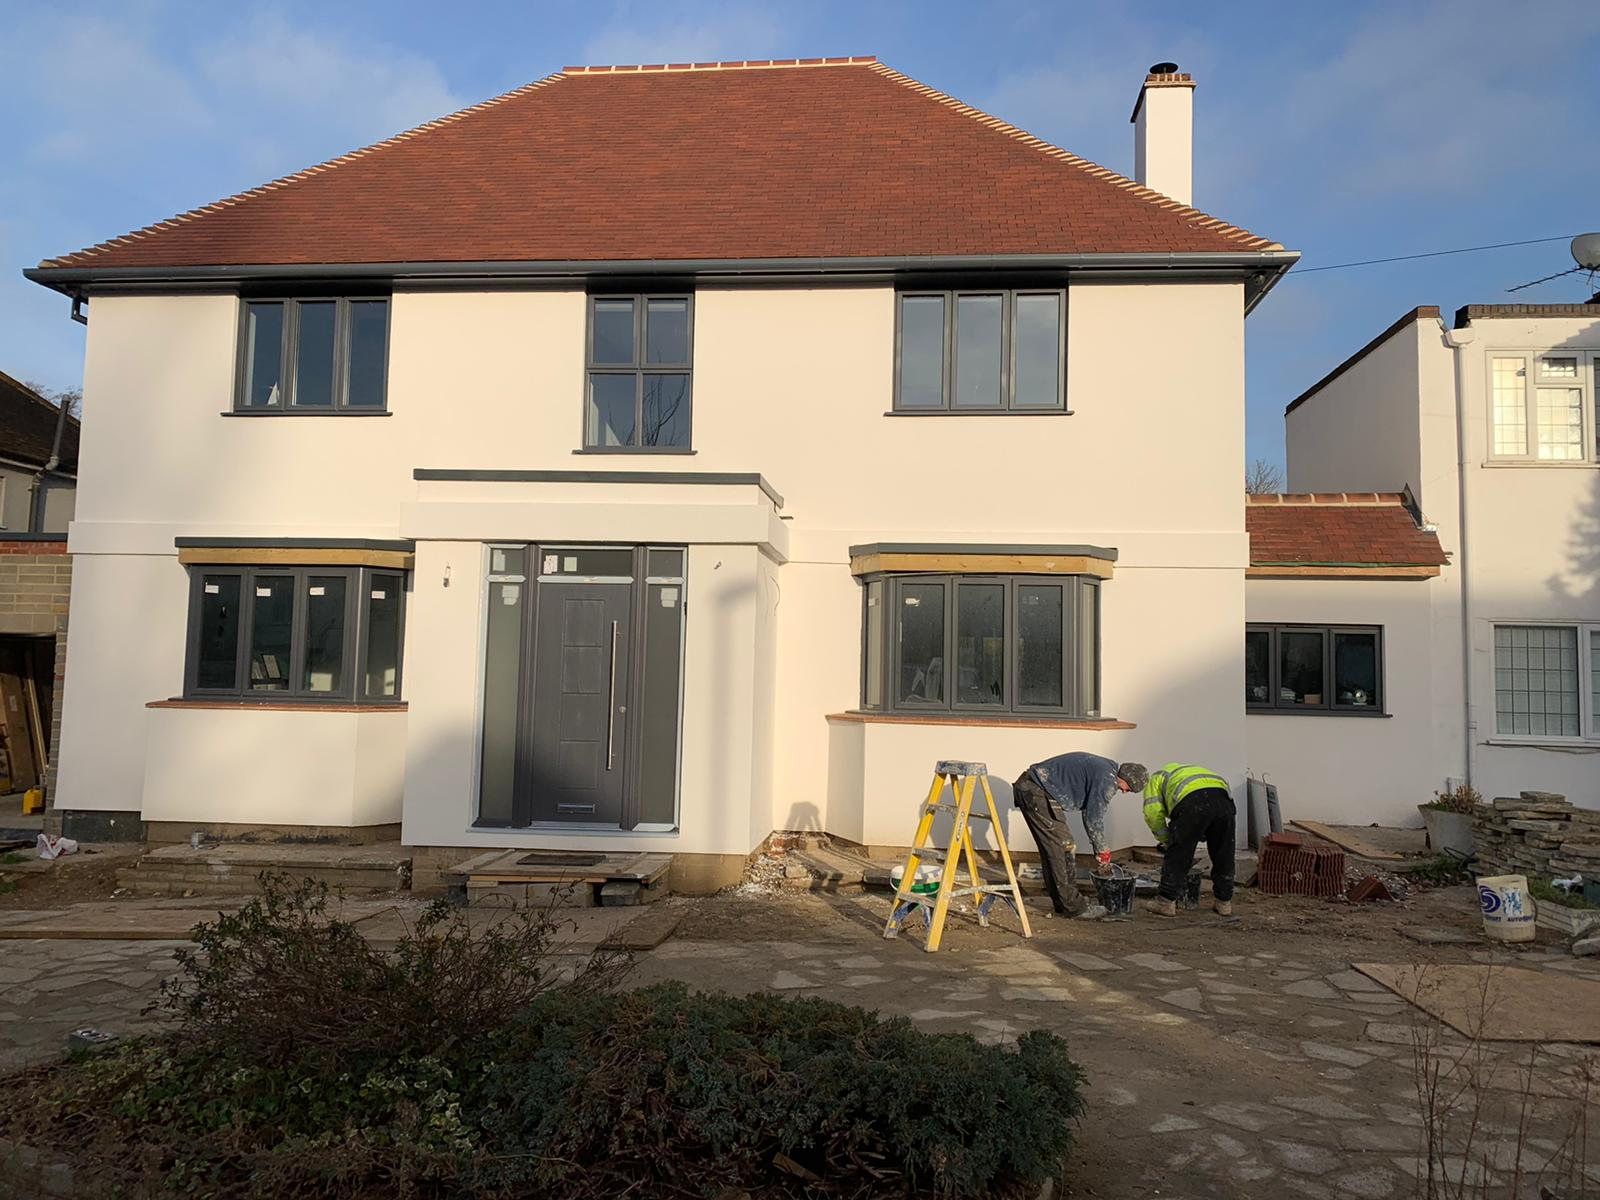 K Rendering in Bromley